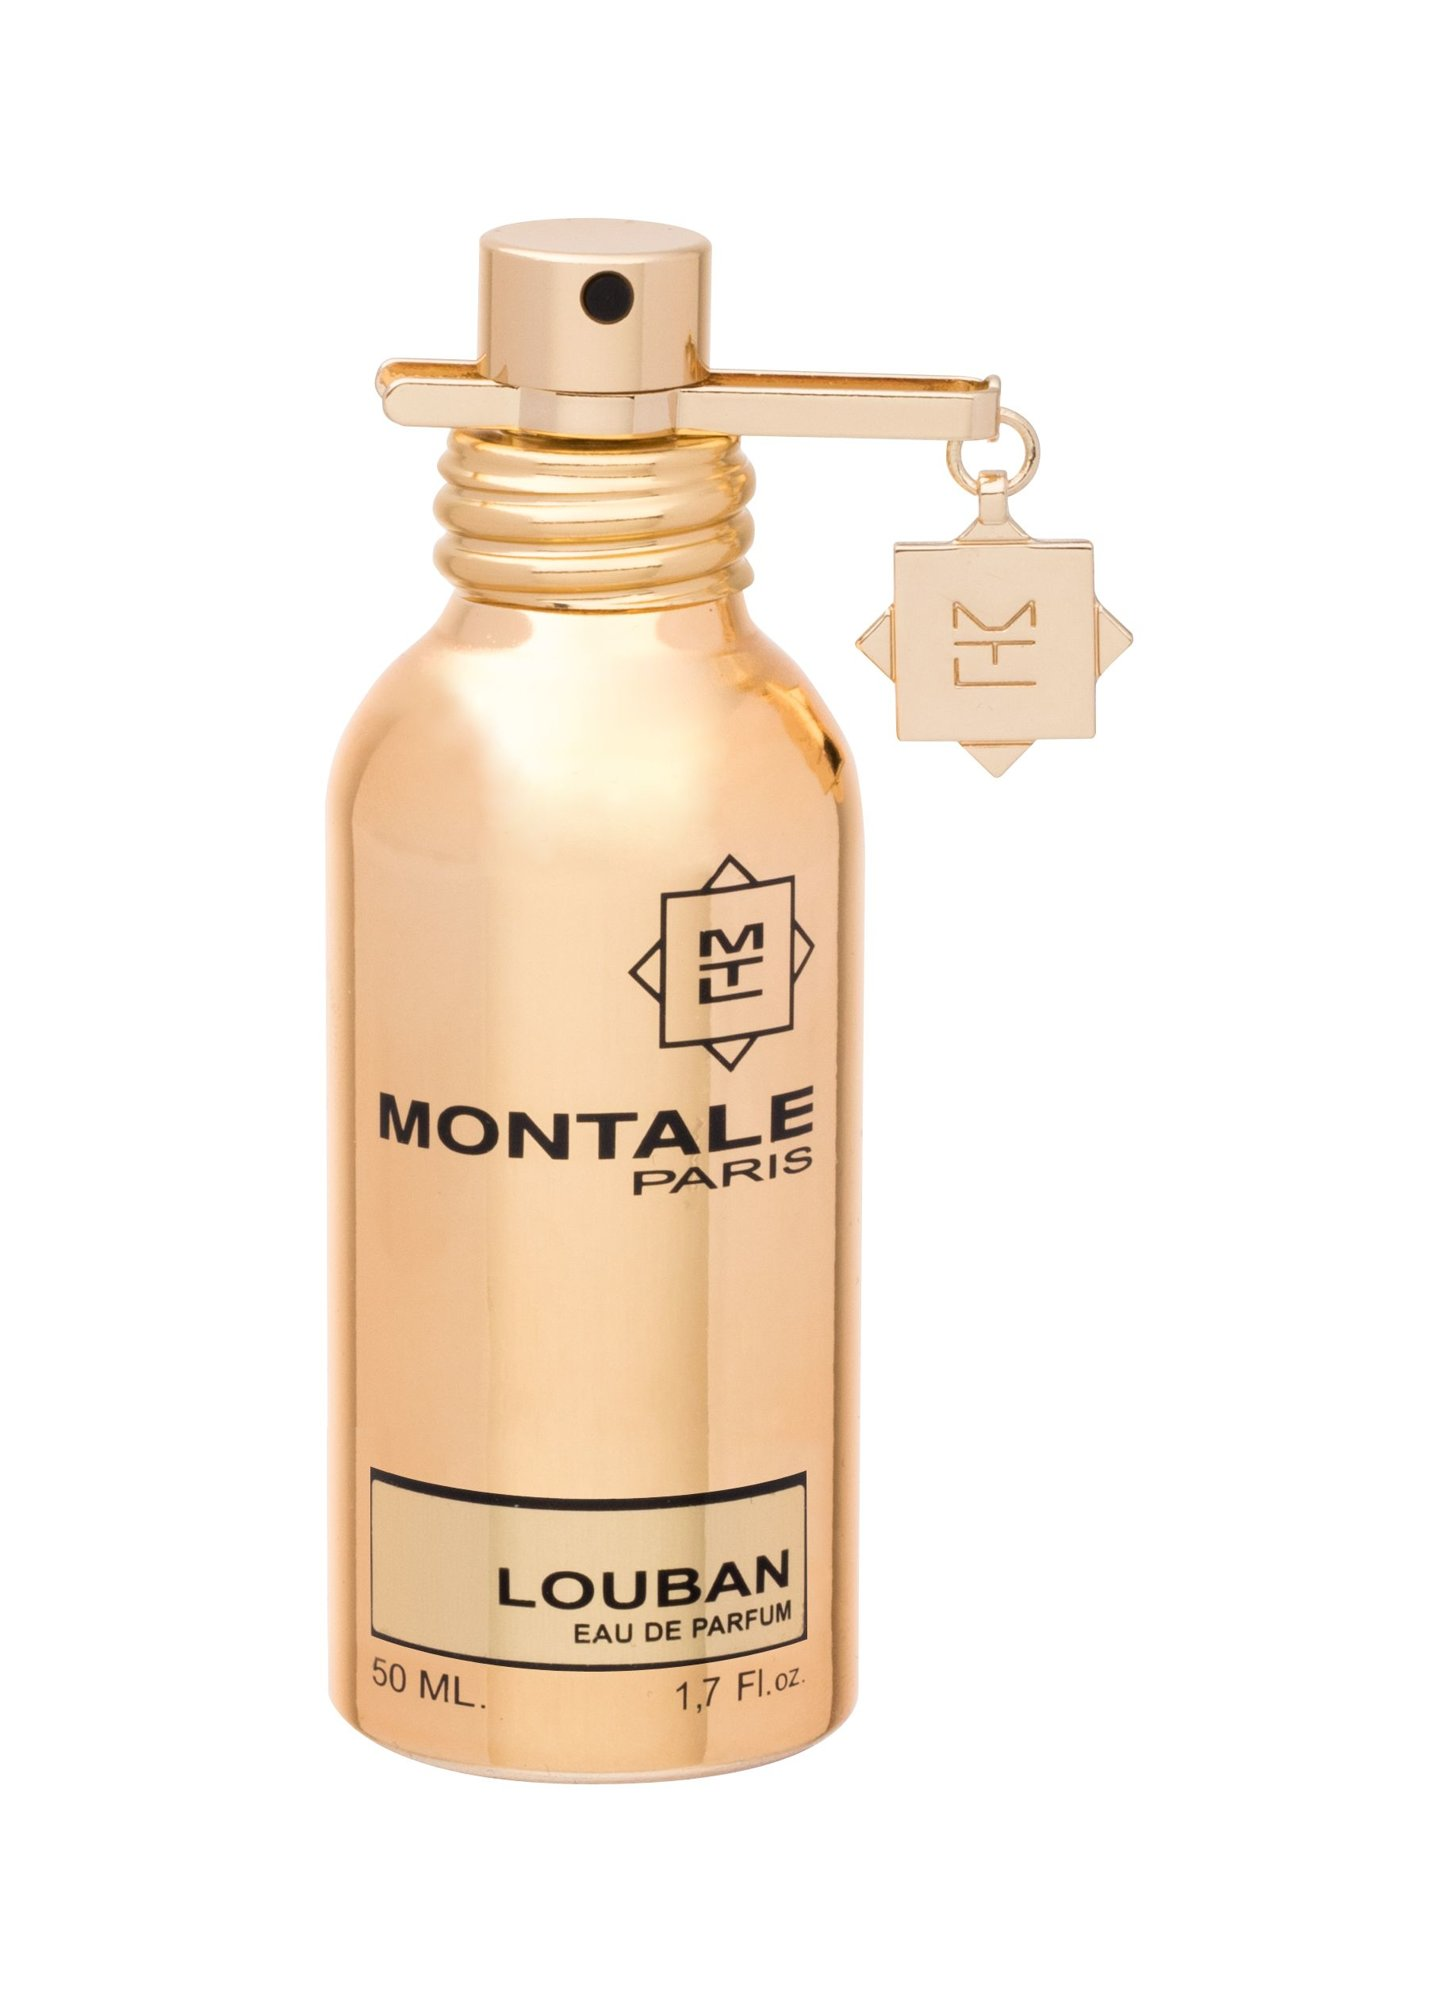 Montale Paris Louban EDP 50ml